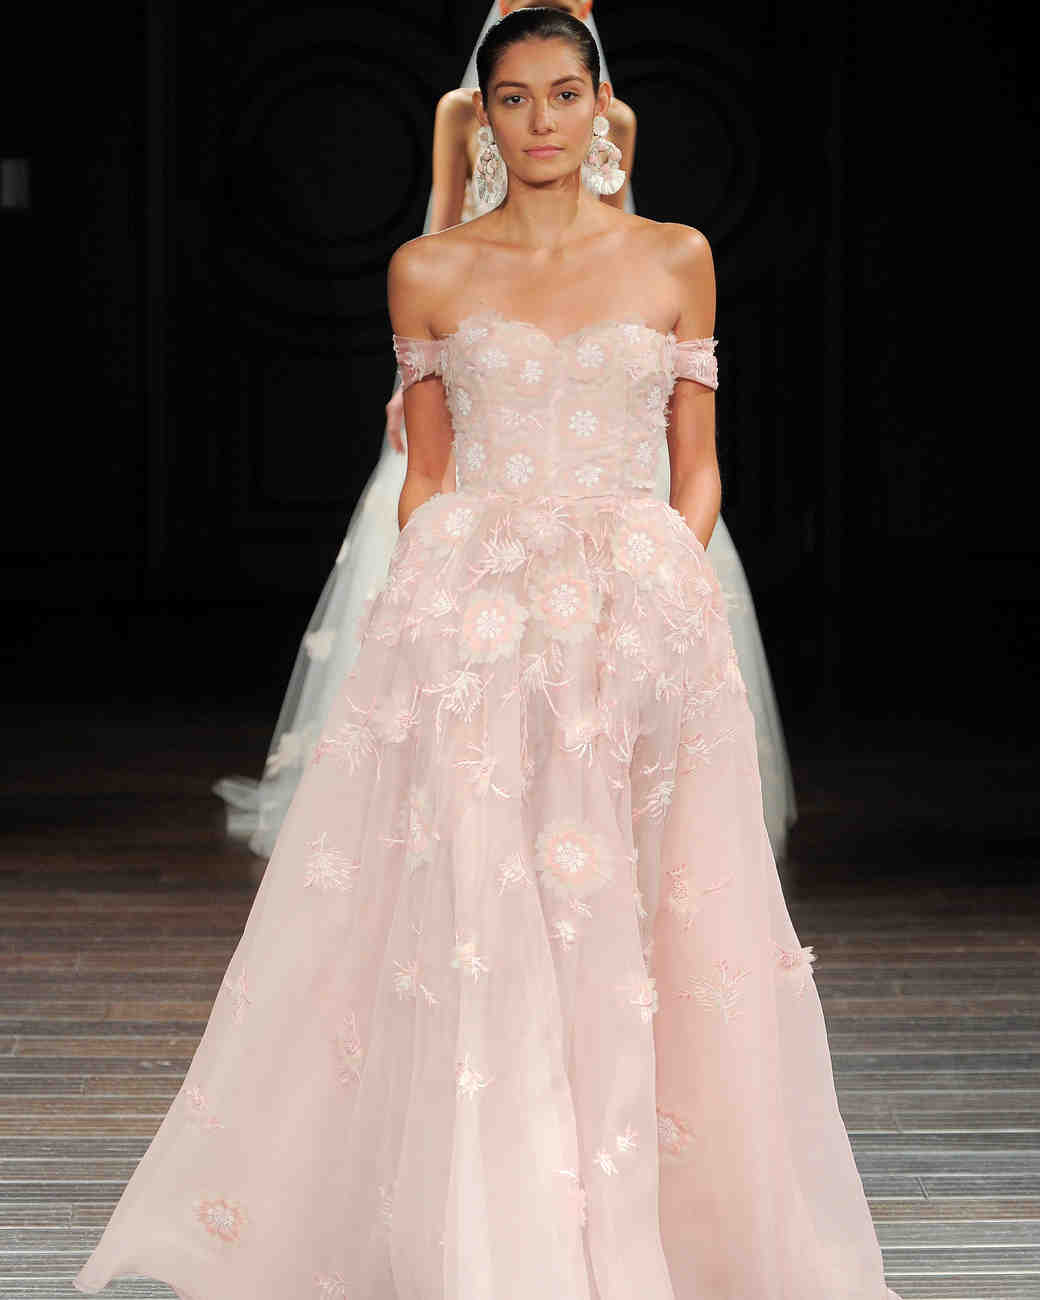 Pink Floral Off-the-Shoulder Wedding Gown with Pockets